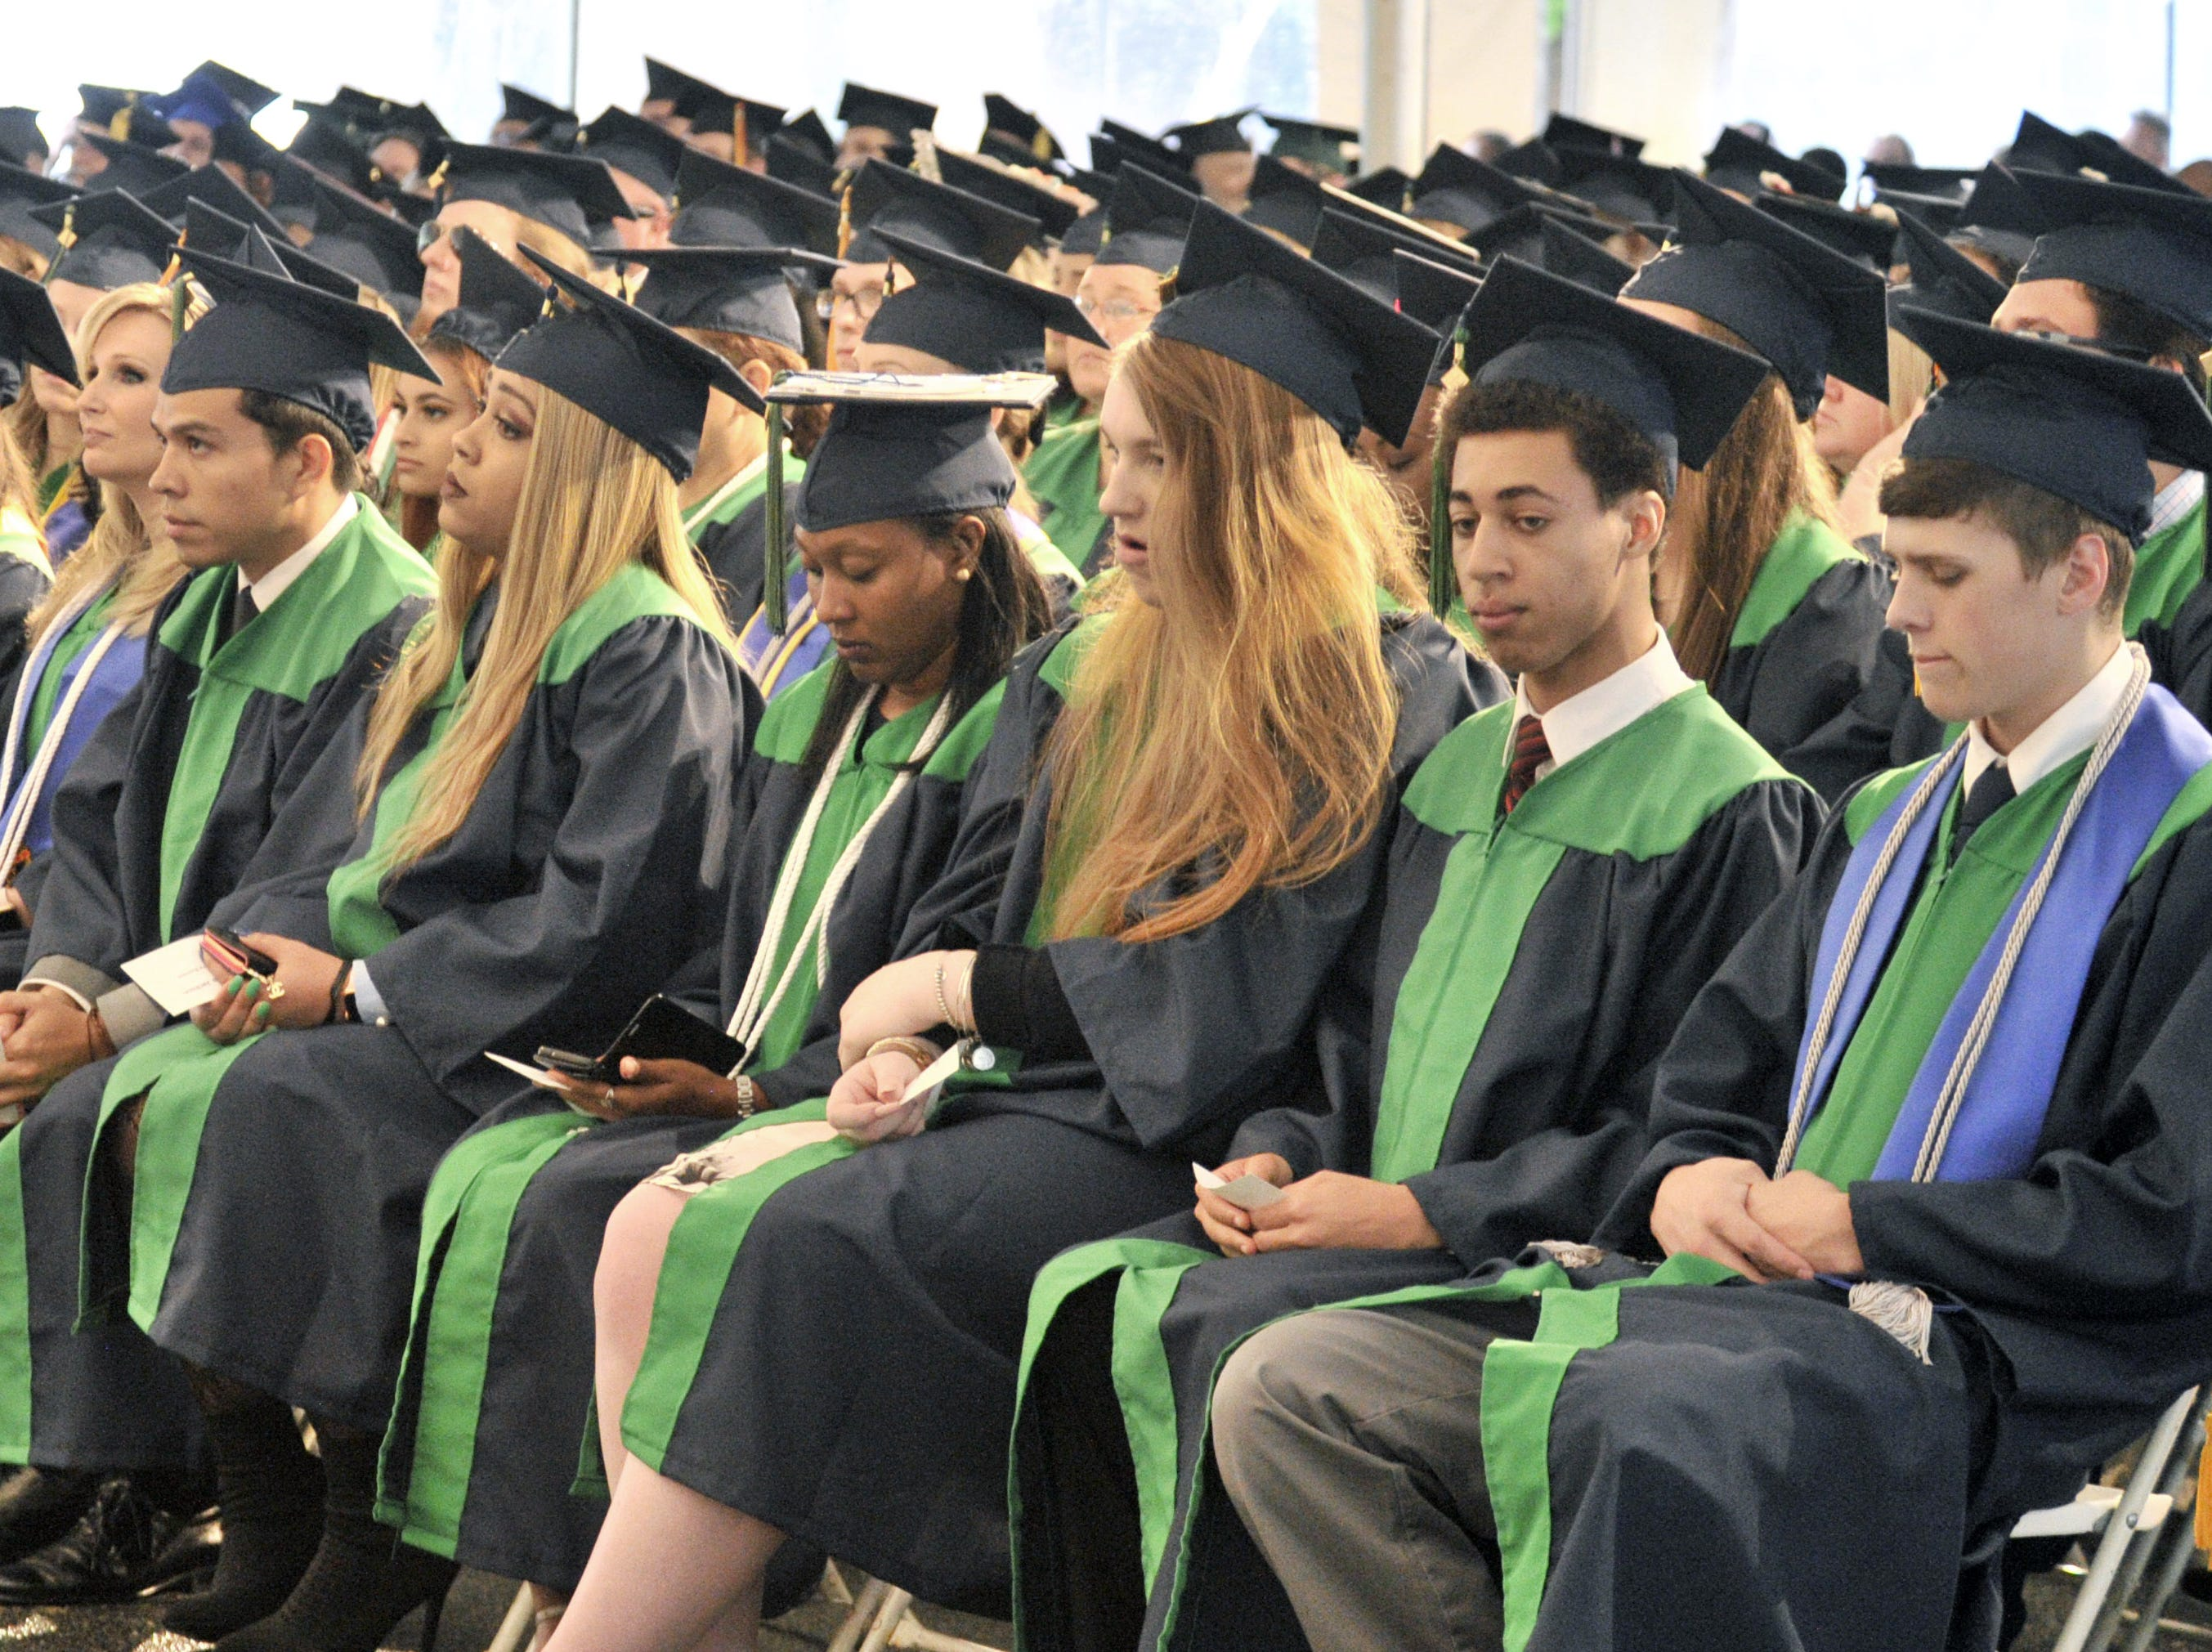 DelTech students waiting to get their degrees and diplomas during Monday night's commencement exercise.